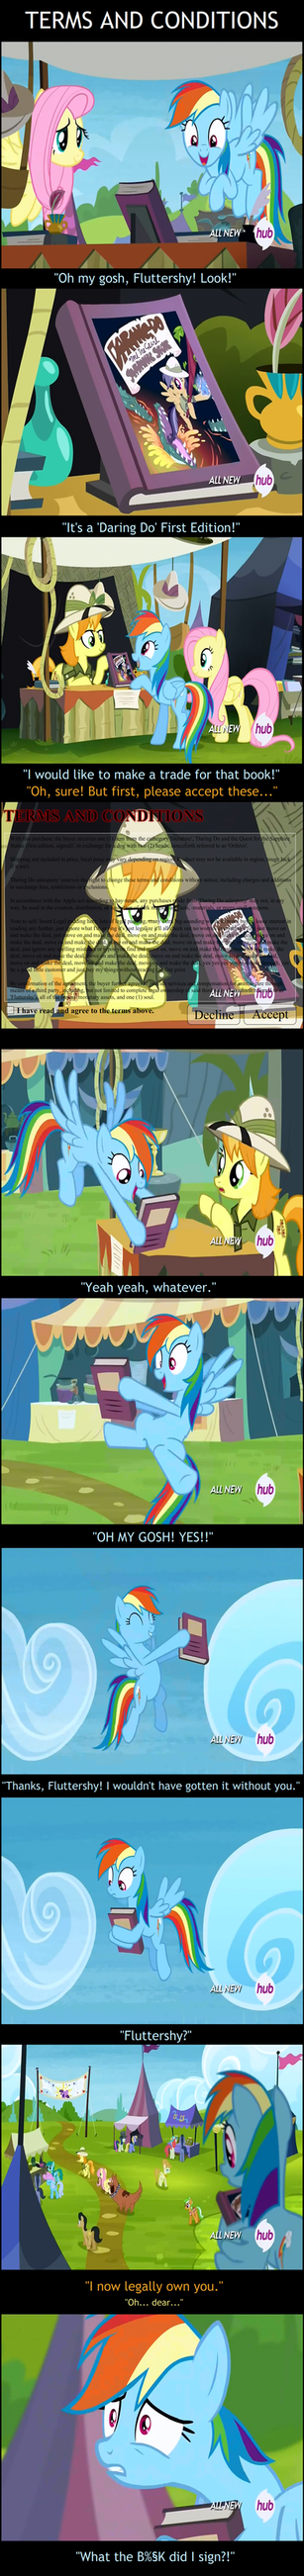 Trade Ya - Terms and Conditions [Screenshot-comic] by UltraTheHedgetoaster